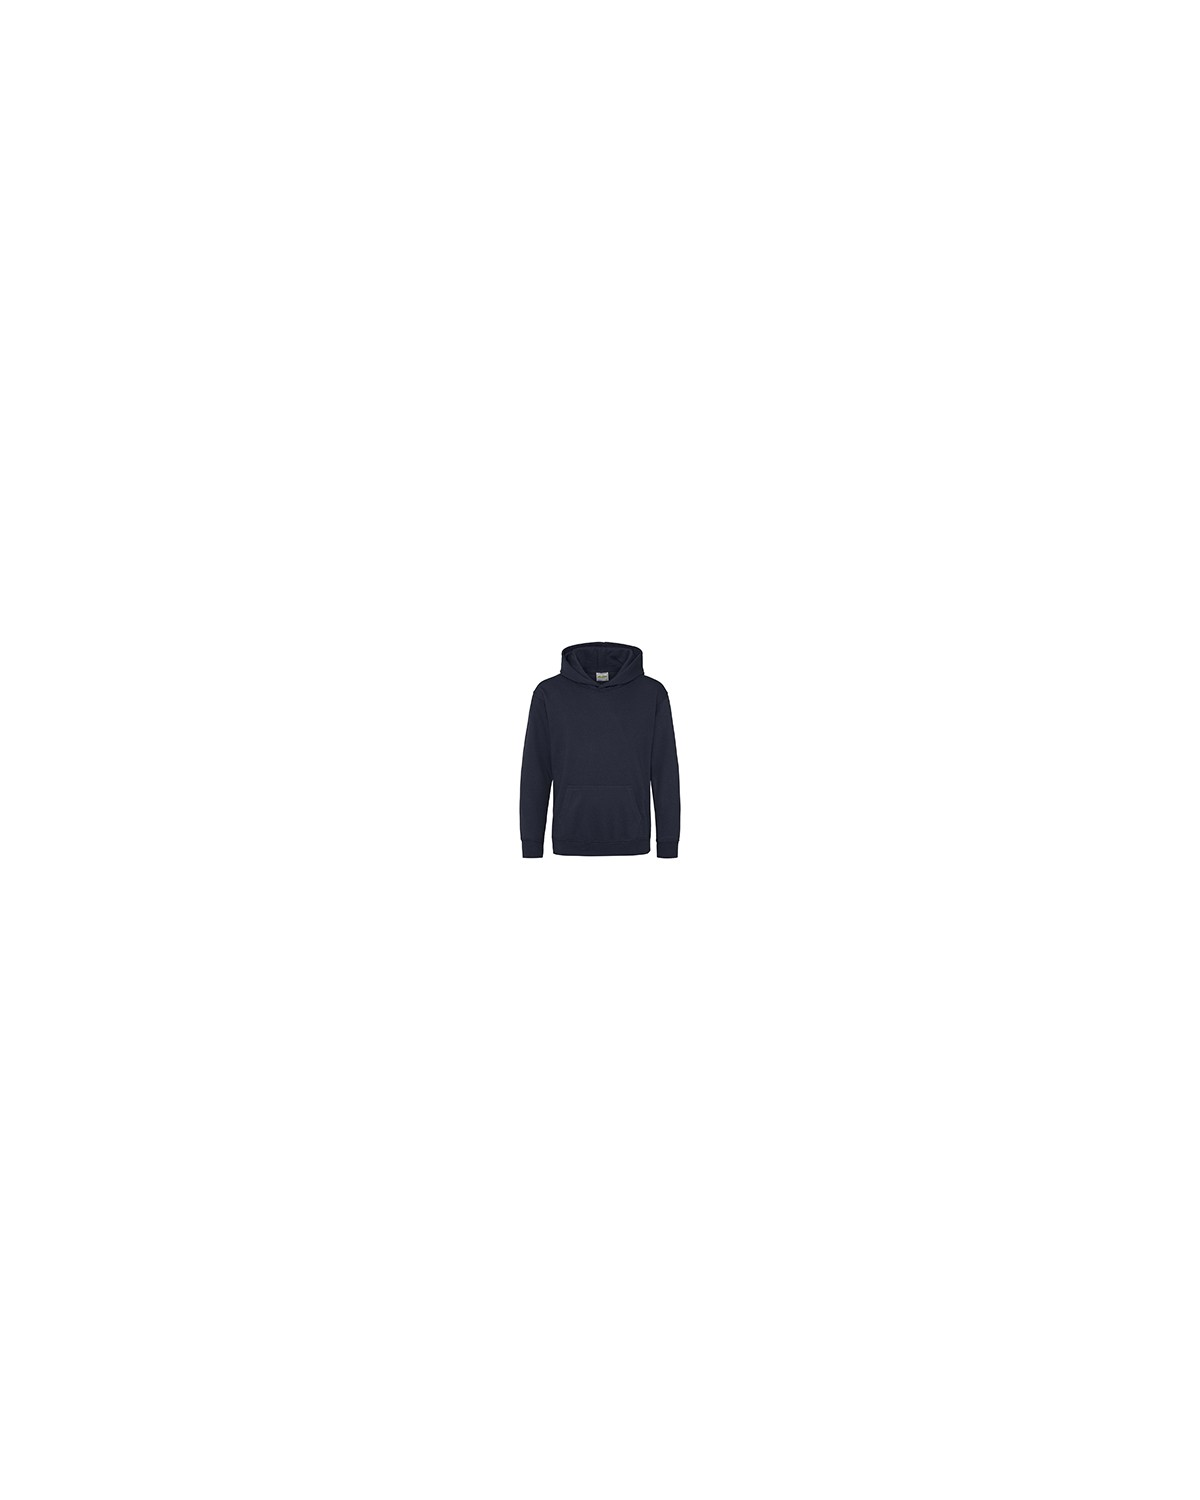 JHY001 Just Hoods By AWDis OXFORD NAVY